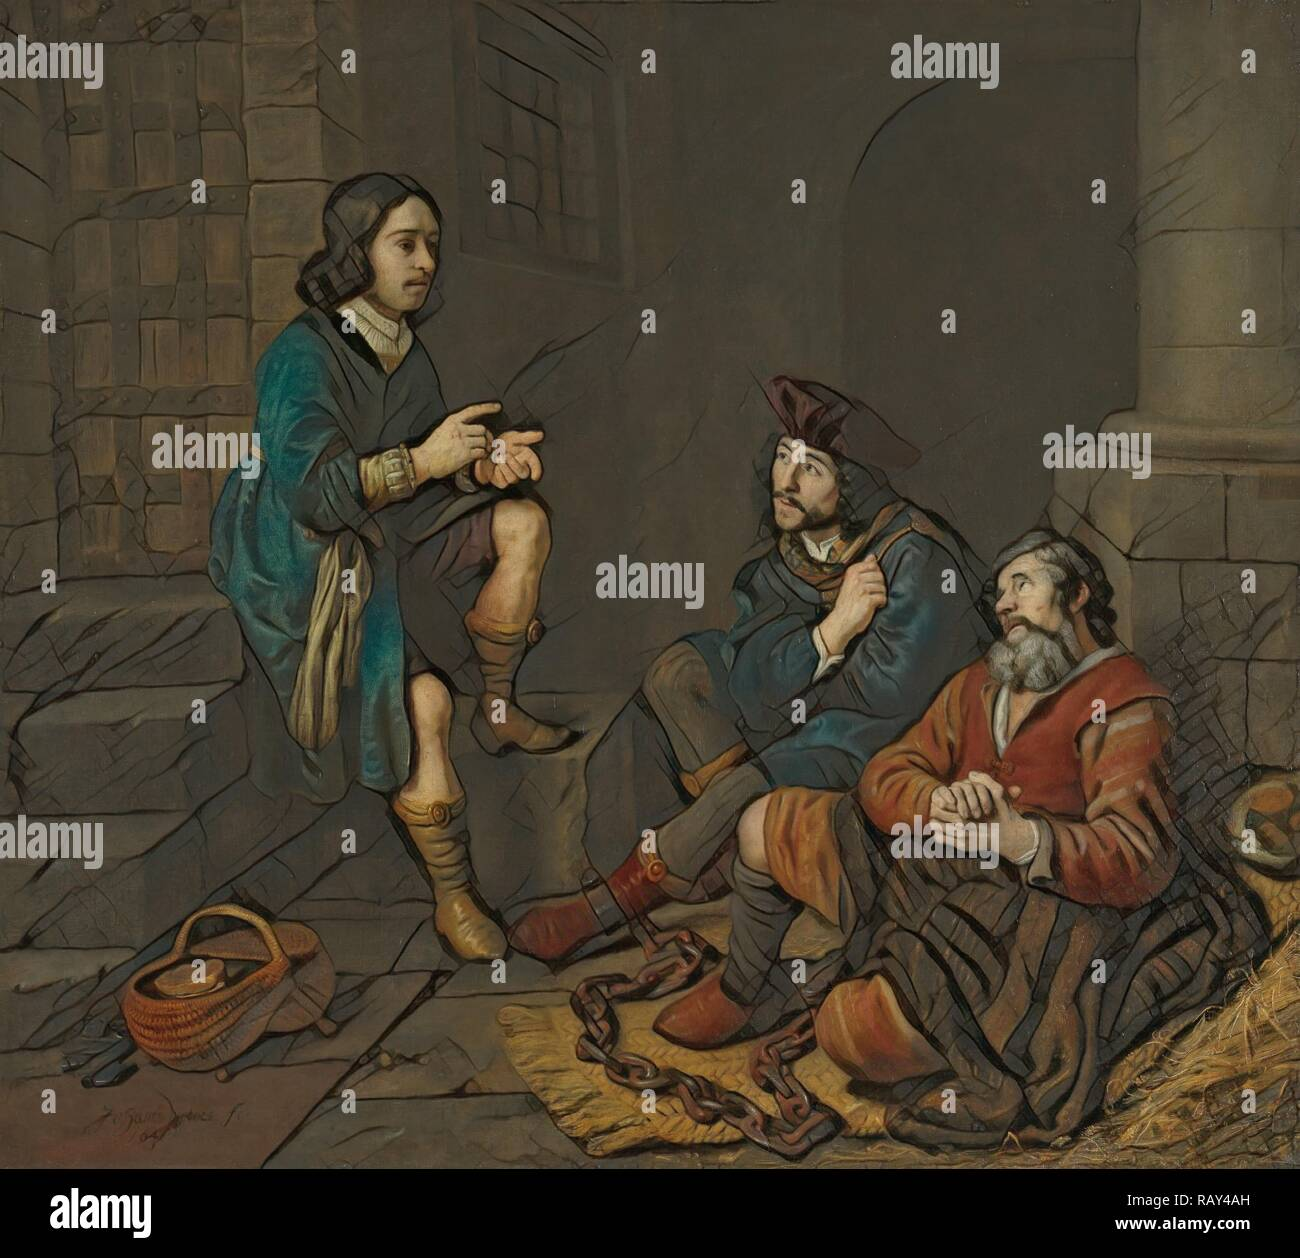 Joseph Interprets the Dreams of the Baker and the Butler, Jan Victors, 1648. Reimagined by Gibon. Classic art with a reimagined - Stock Image